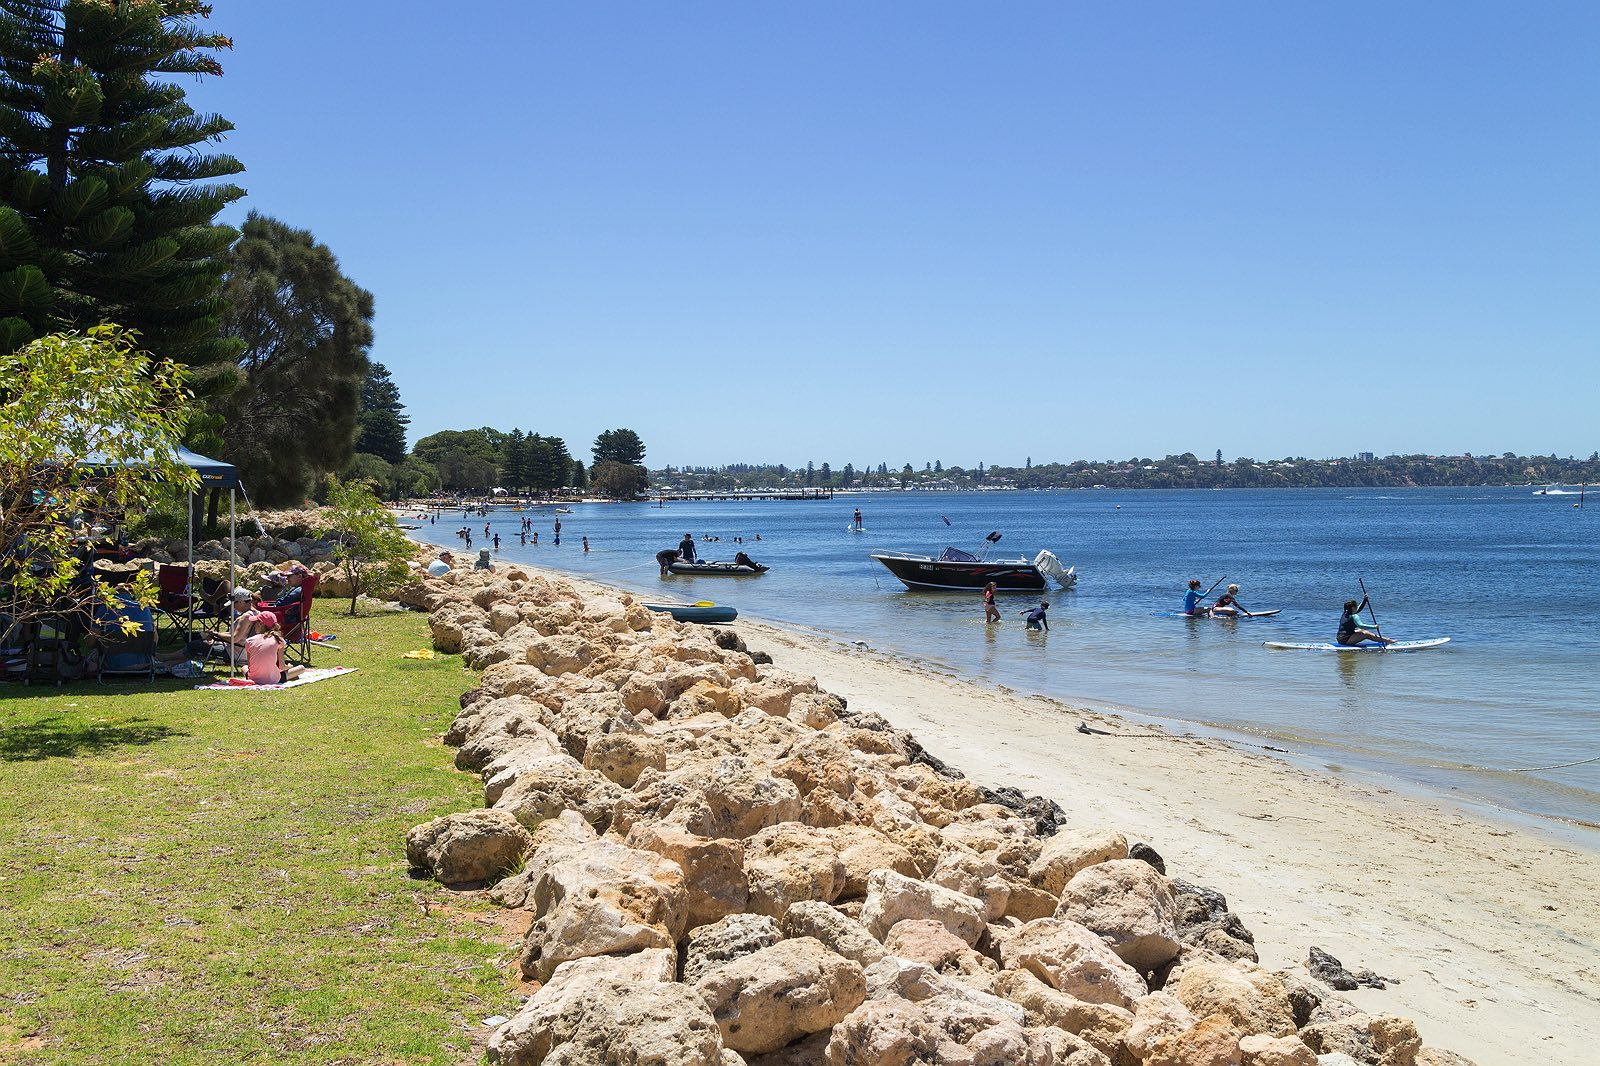 point-walter-swan-river-perth-2